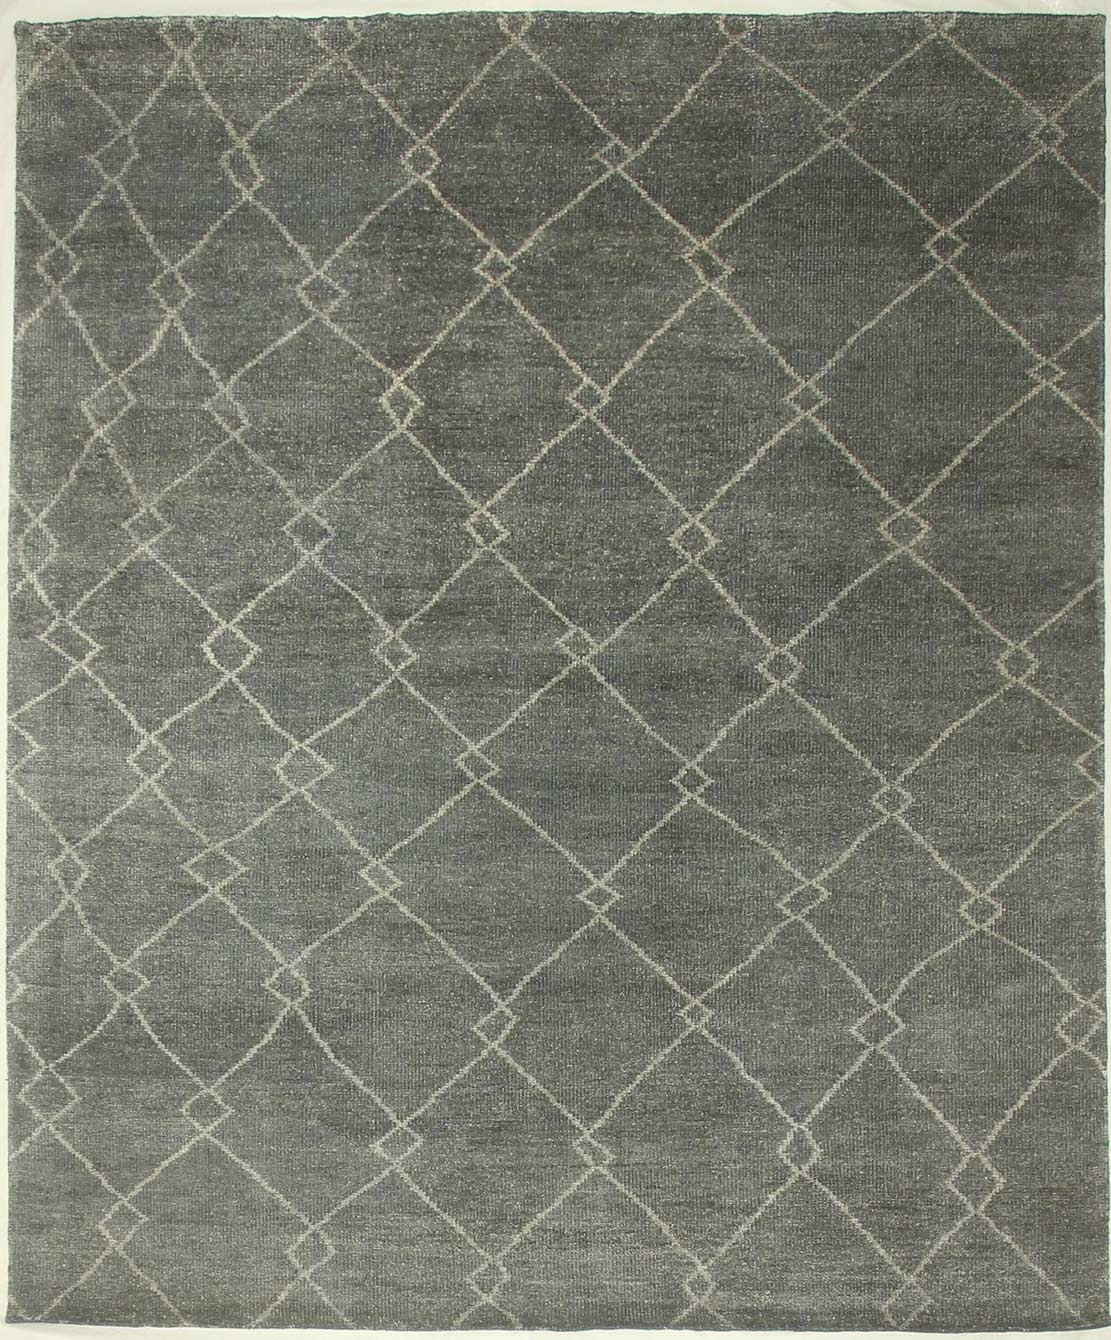 Shop Modern And Contemporary Rugs Bosphorus Modern Rugs Esber For Modern Rugs (Image 13 of 15)